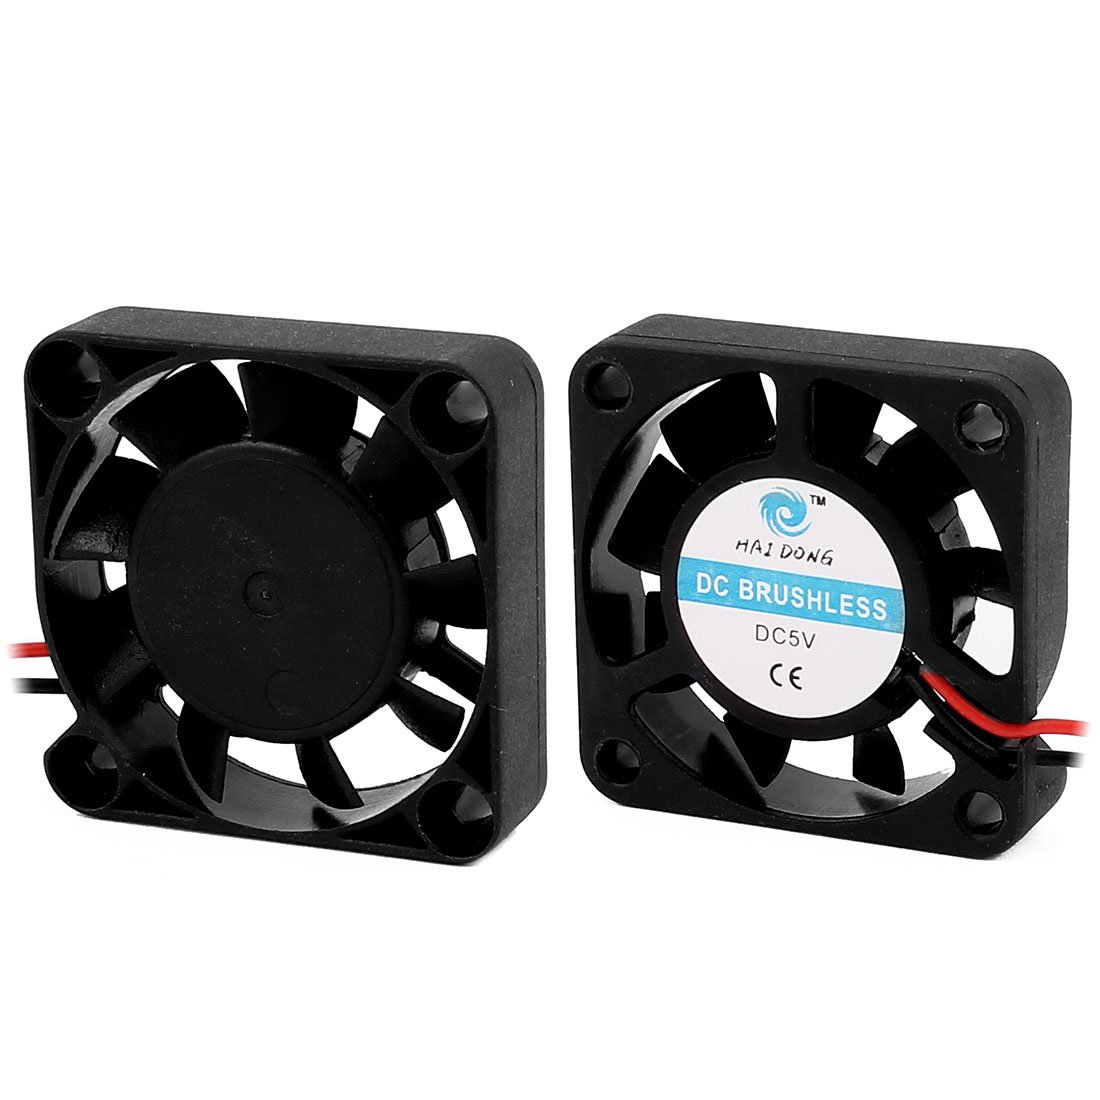 uxcell a16032500ux0874 2 Piece 40 x 40 x 10 mm 5V 0.14 Amp DC Heat Sink Silent Cooling Case Fan Black 1.57 inches Width 1.57 inches Length